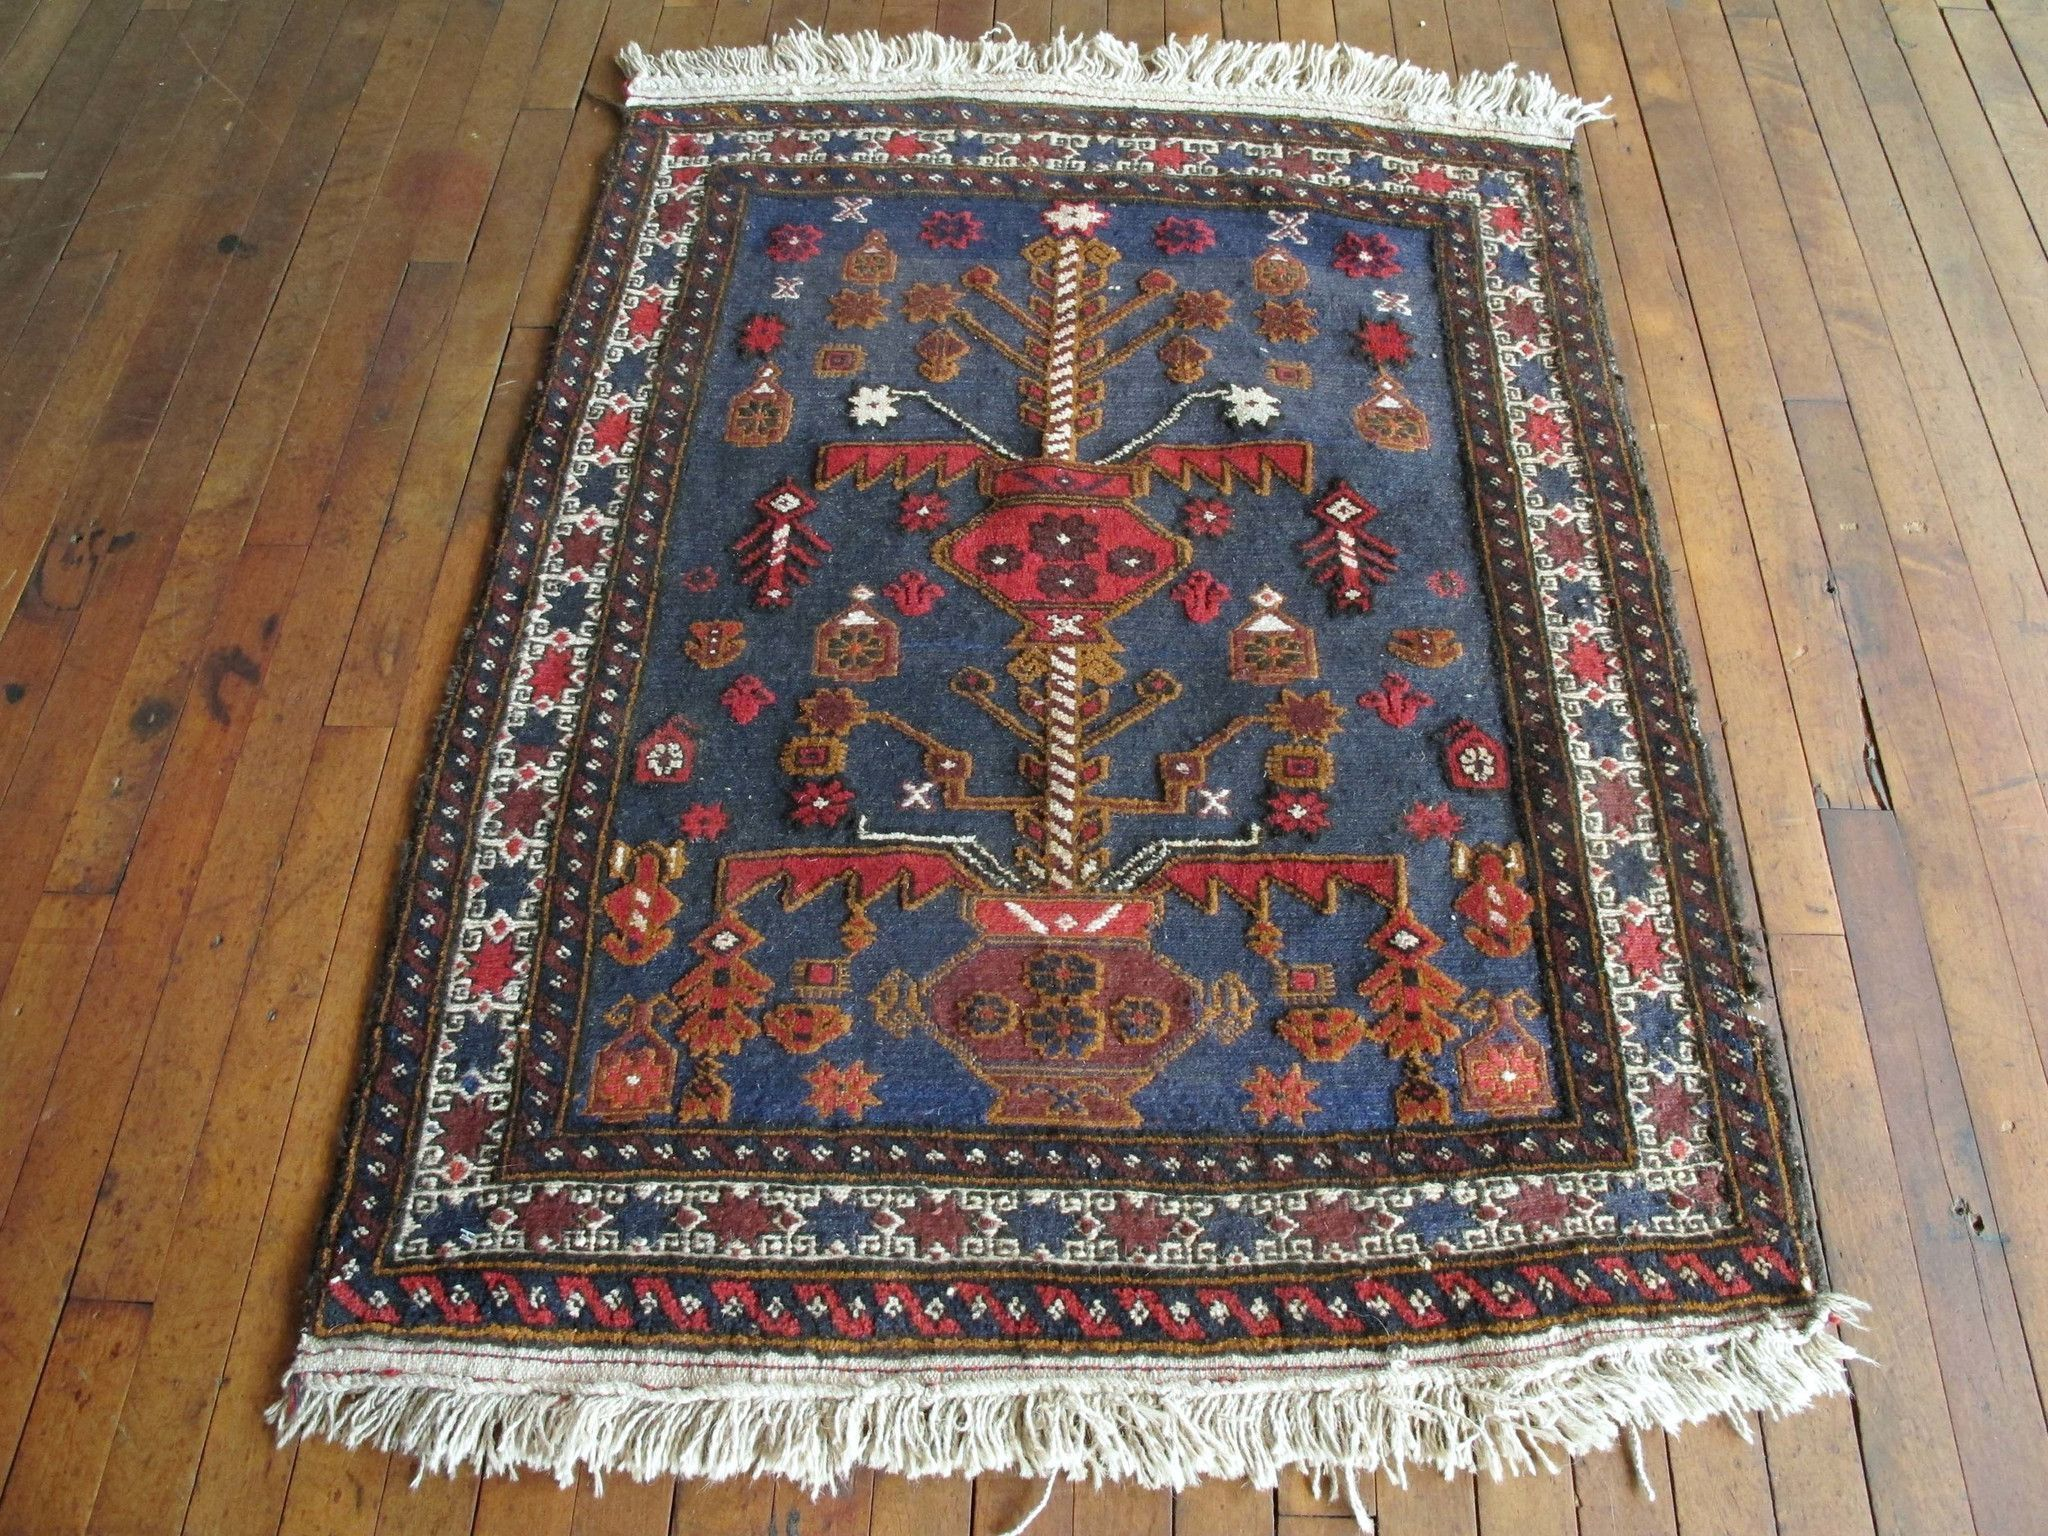 She Is A Beautiful 50 Year Old Unique Looking Vintage Persian Kilim Rug Afina S Bold Dark Navy Blue Red And Gold Accents Low Pile Make Her Perfect